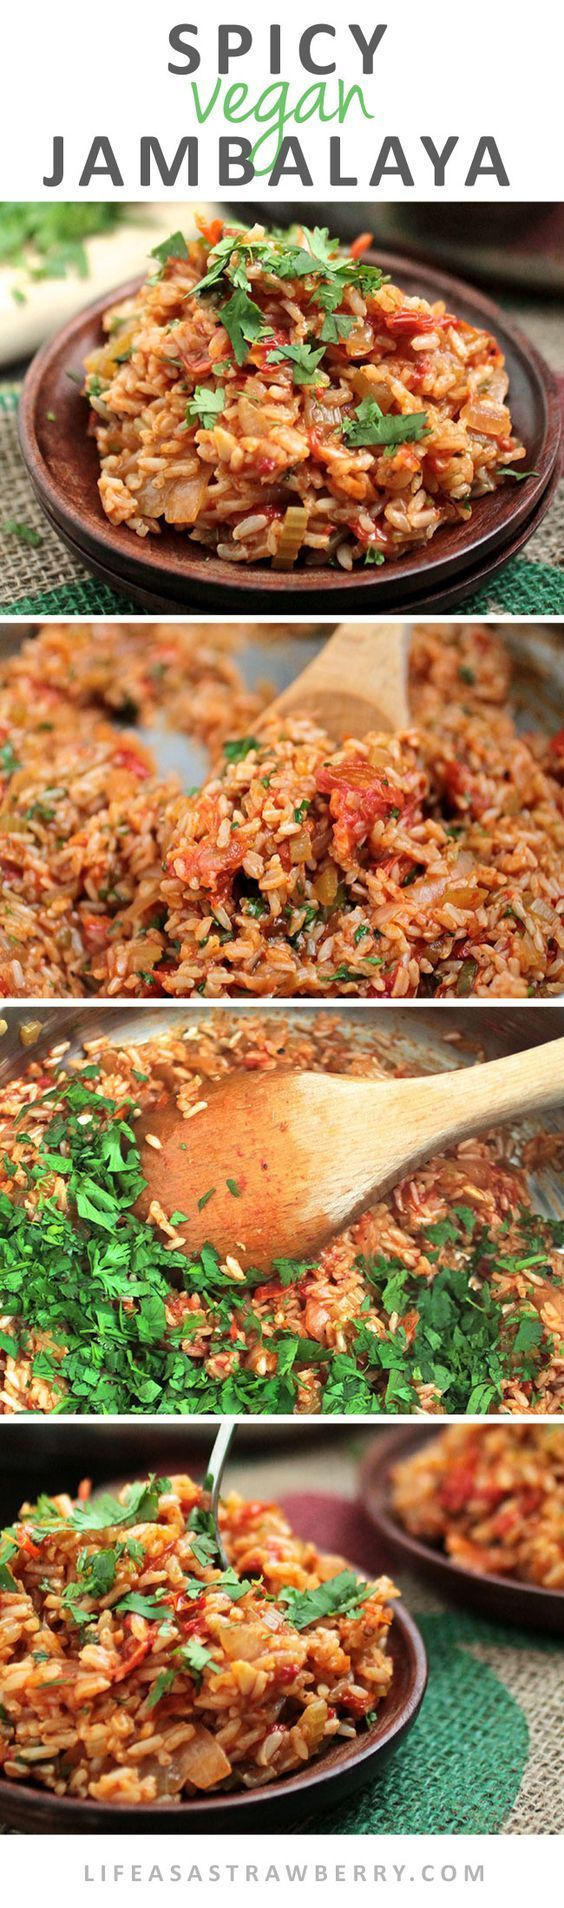 Spicy Vegan Jambalaya | This easy vegan recipe for jambalaya is full of fresh produce and gets a spicy kick from fresh jalapeos! Ready in under an hour - the perfect healthy vegan recipe for busy weeknights.